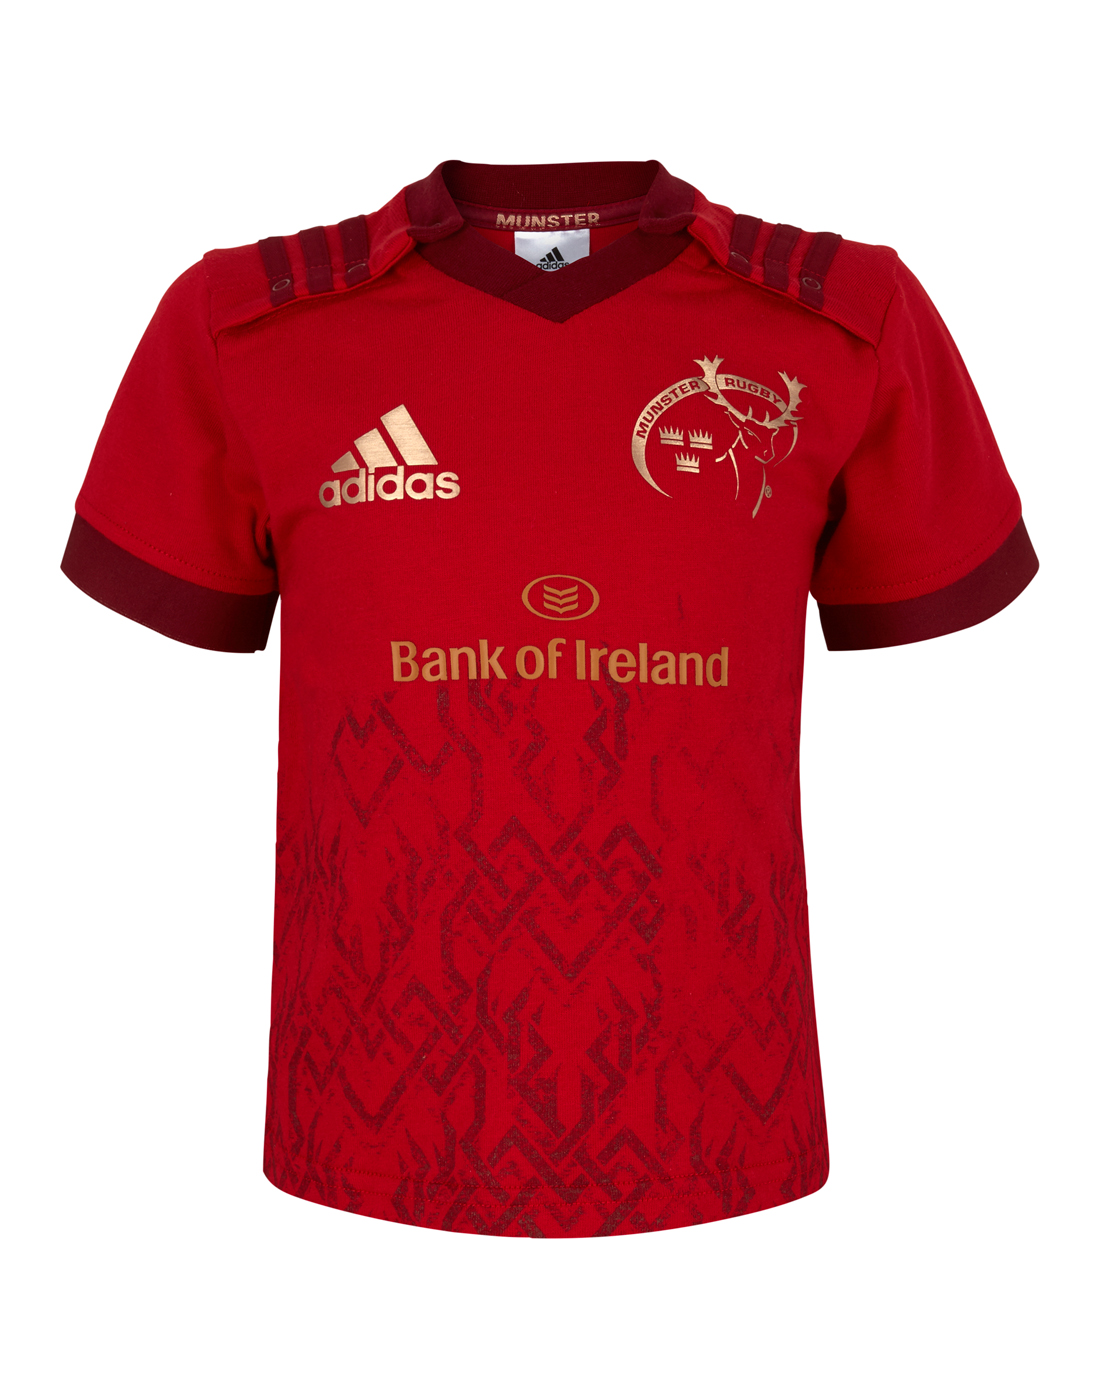 7b7f7c8db adidas Munster Home Baby Kit 2018/19 | Life Style Sports